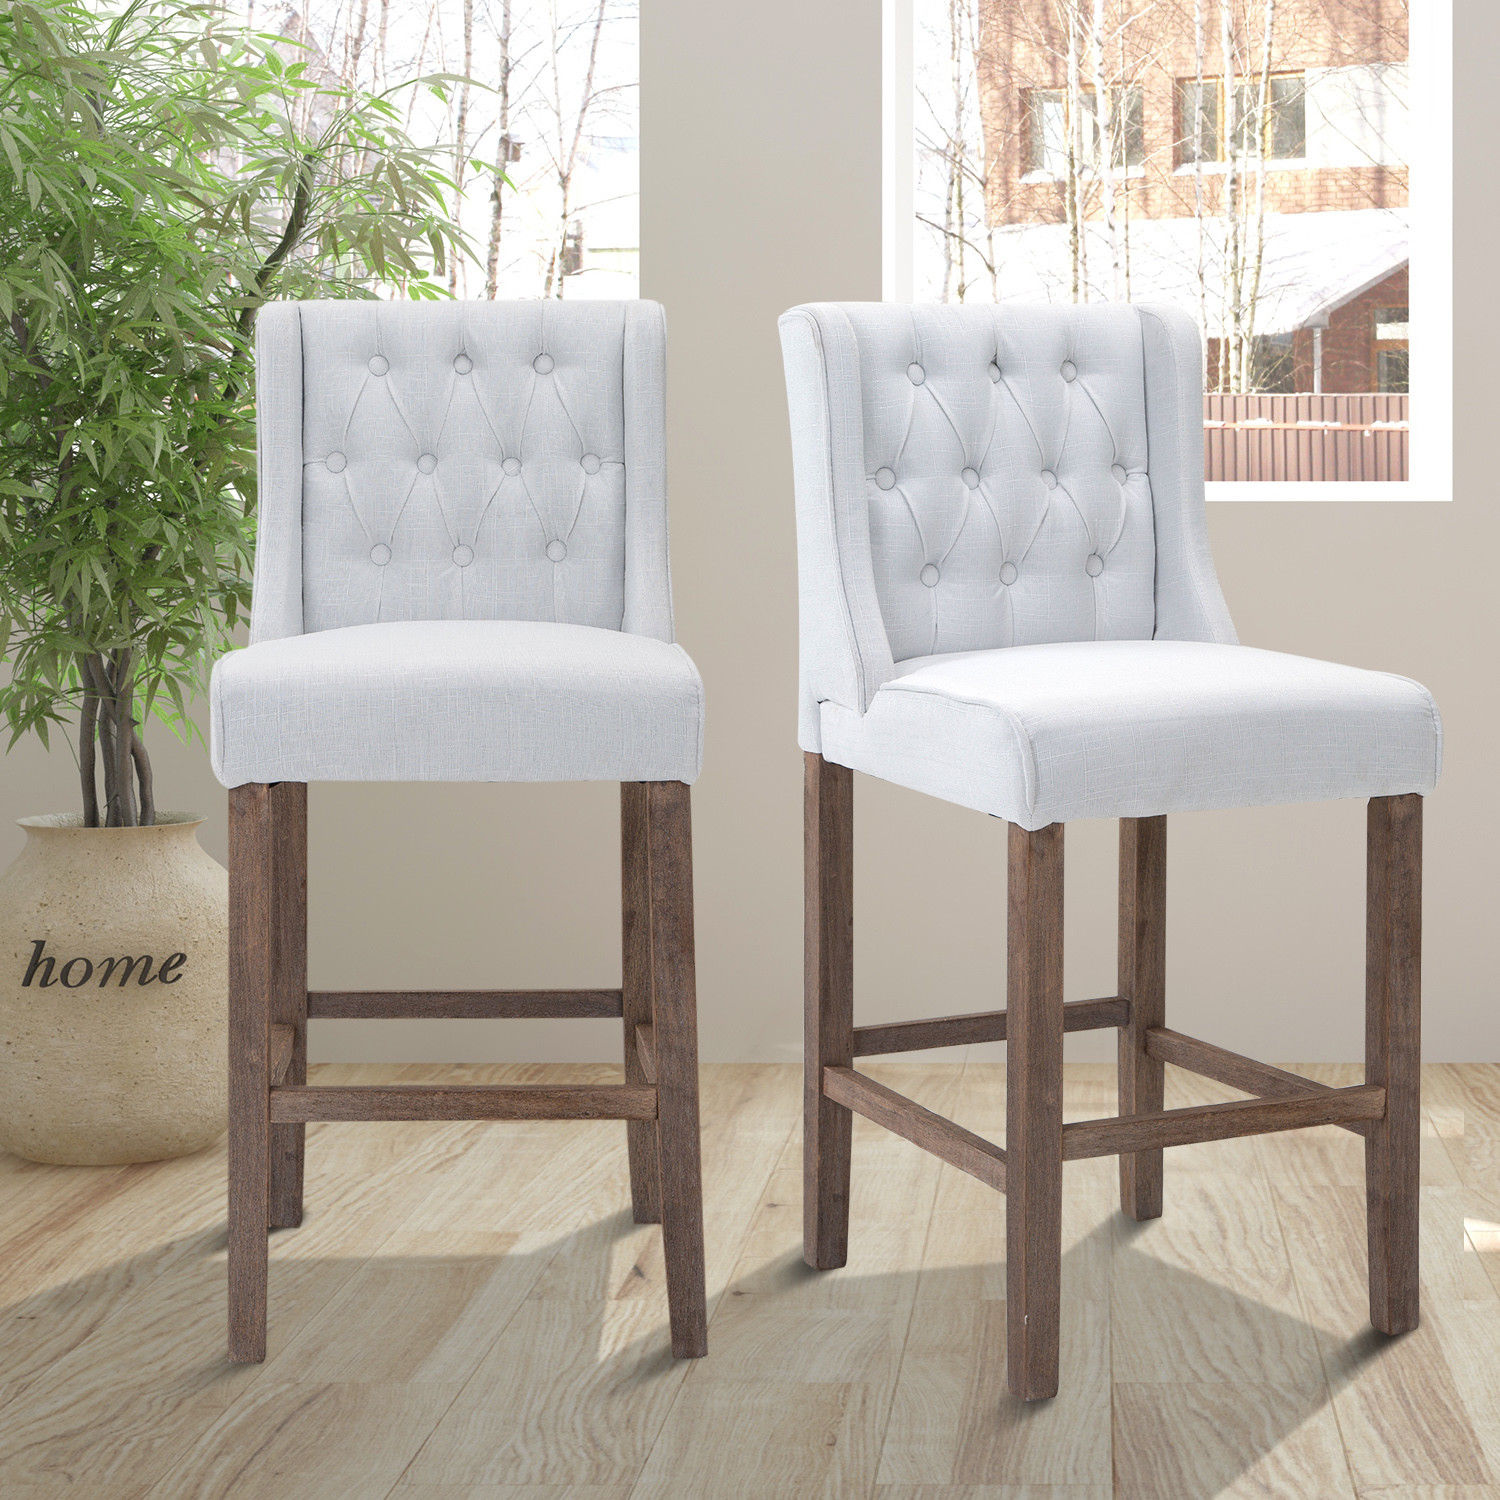 Groovy Details About 40 Set Of 2 Tufted Bar Stool Counter Height Chair Dining Accent Cream White Dailytribune Chair Design For Home Dailytribuneorg